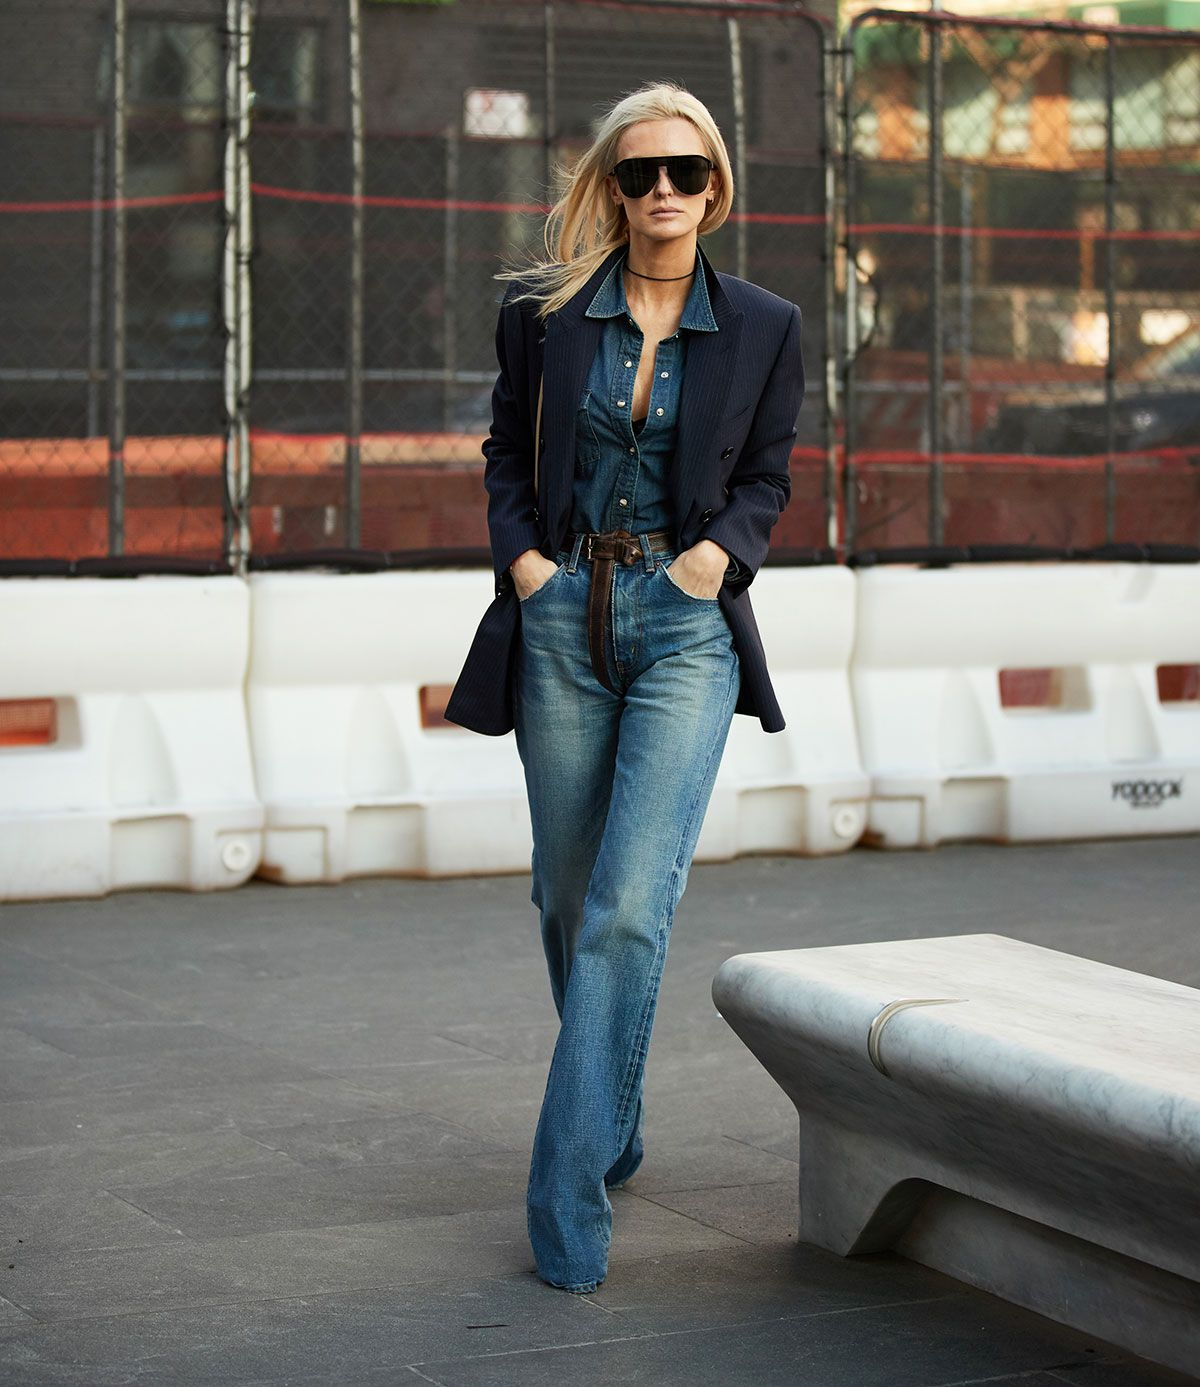 My Friend Asked What to Wear With Flare Jeans, and I Suggested These 6 Basics 6